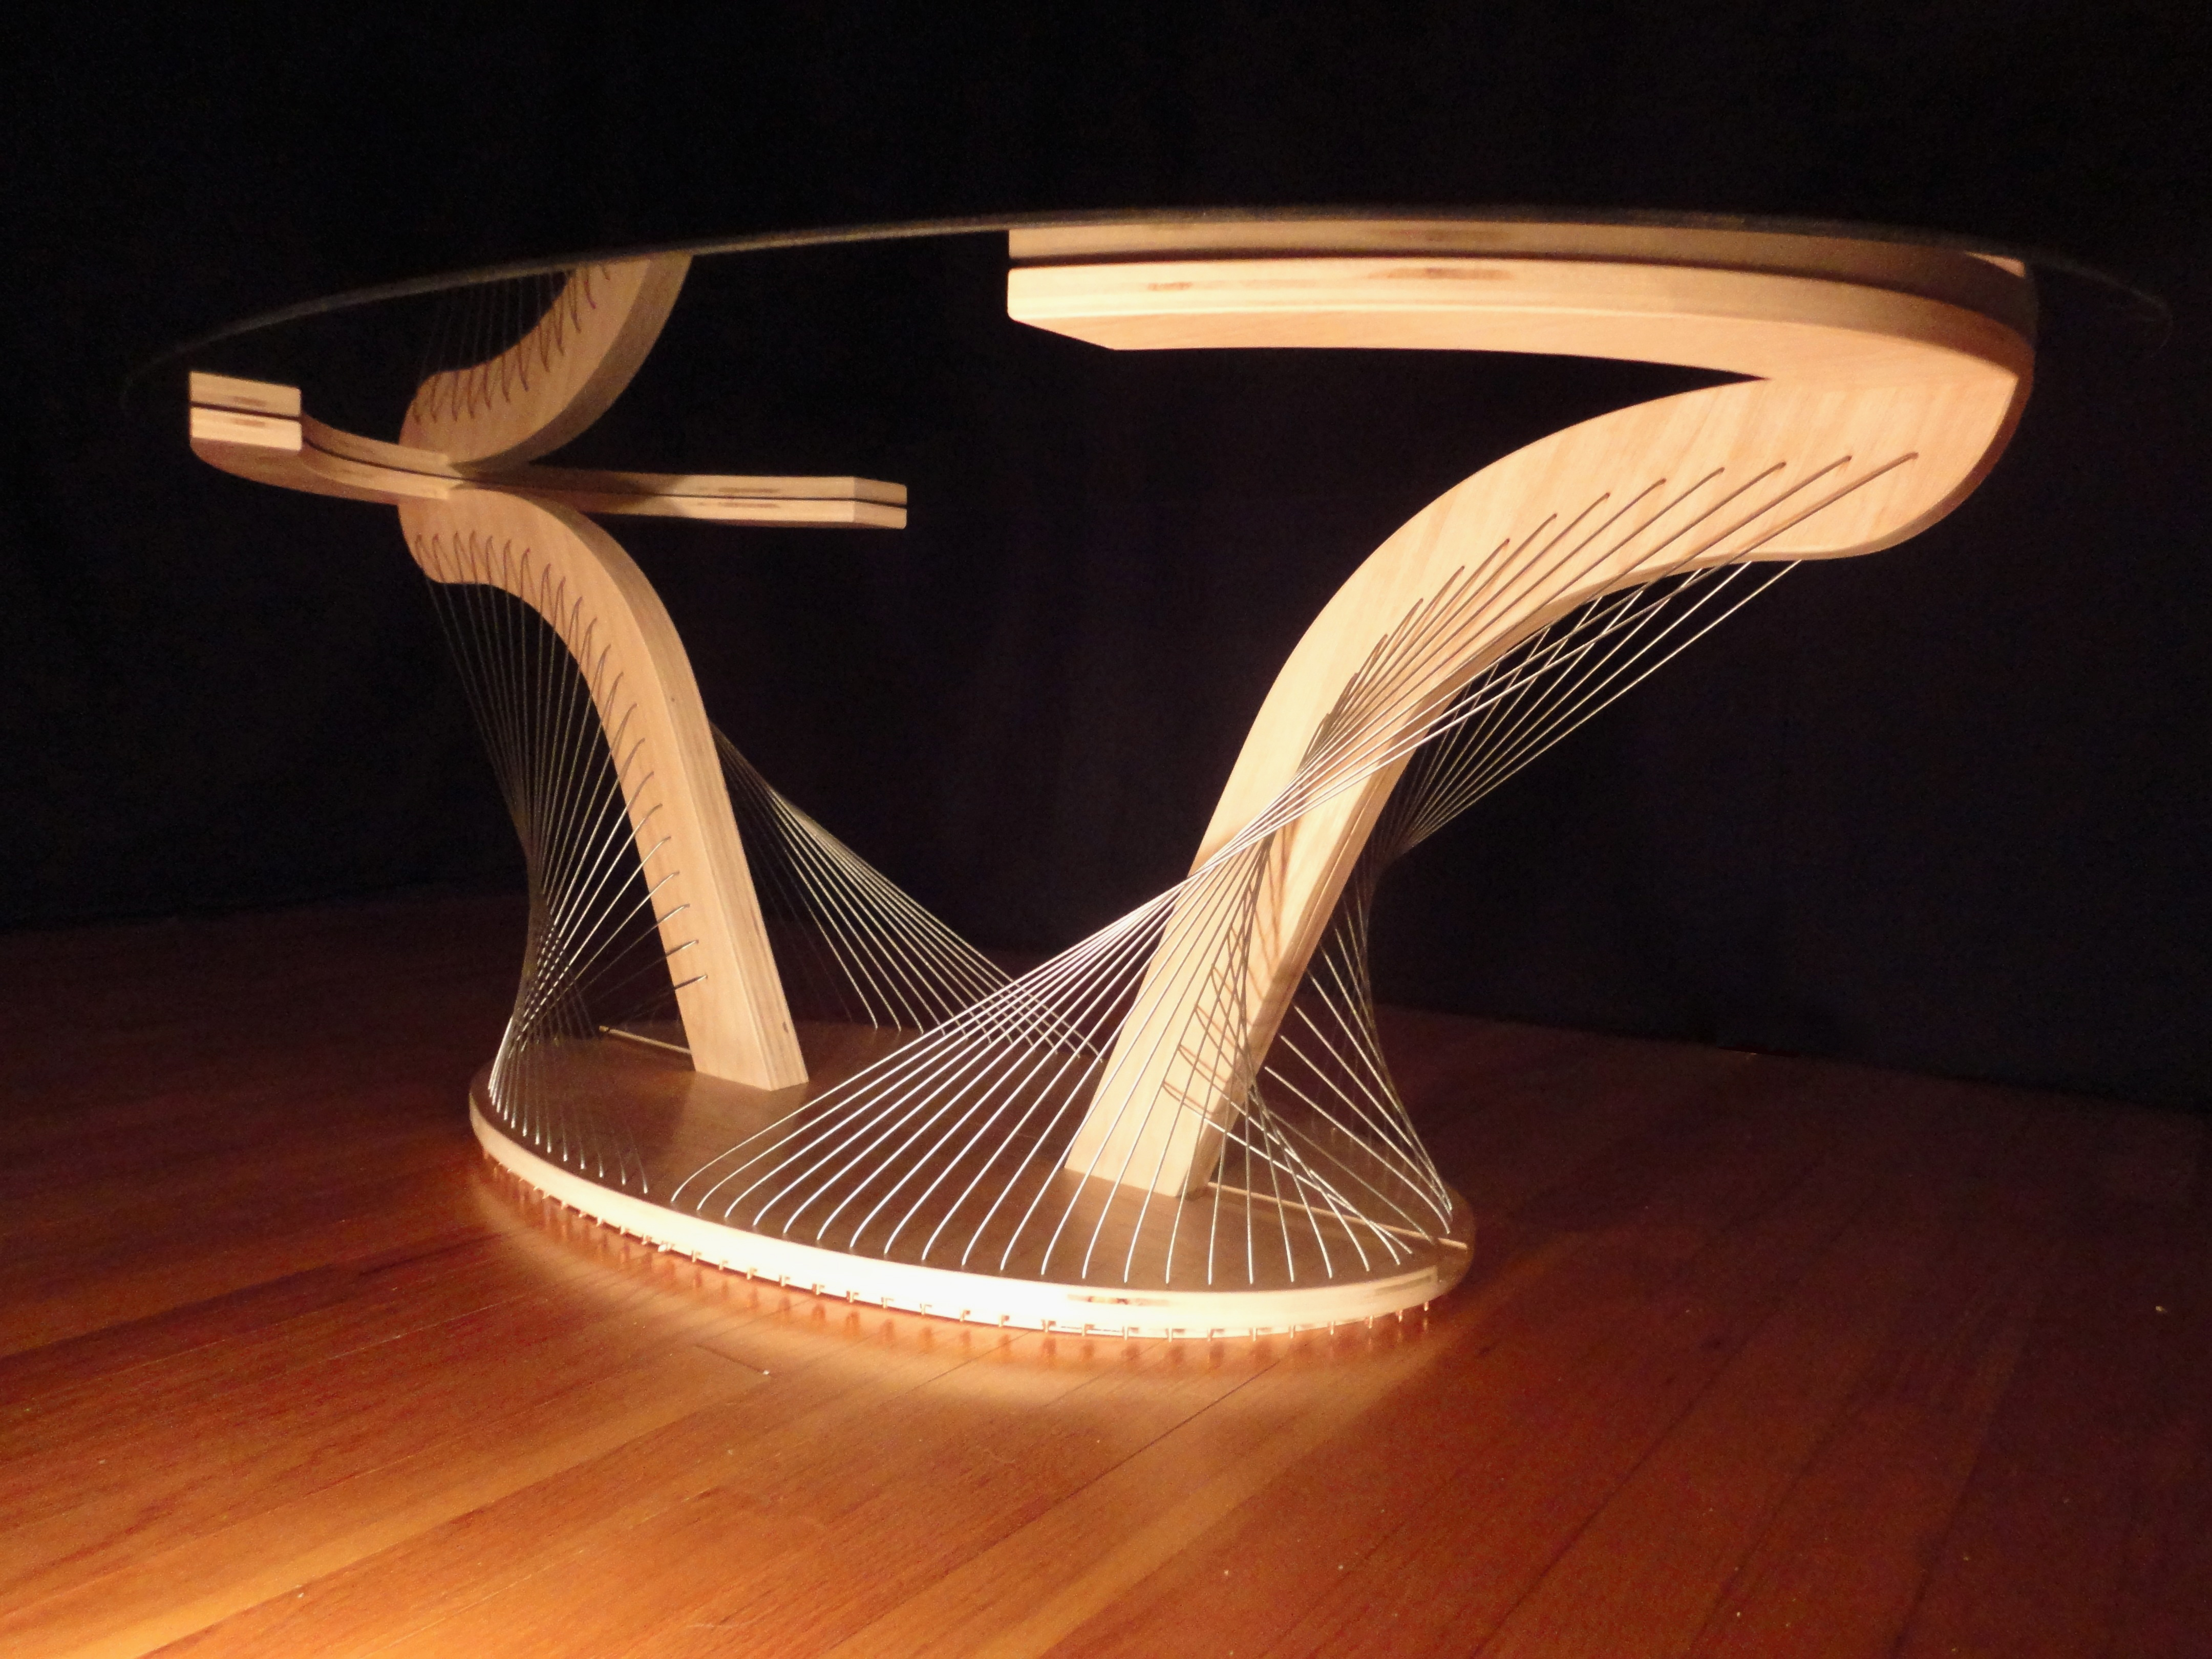 Wood and wire Sculptural Oval Coffee Table by Robby Cuthbert